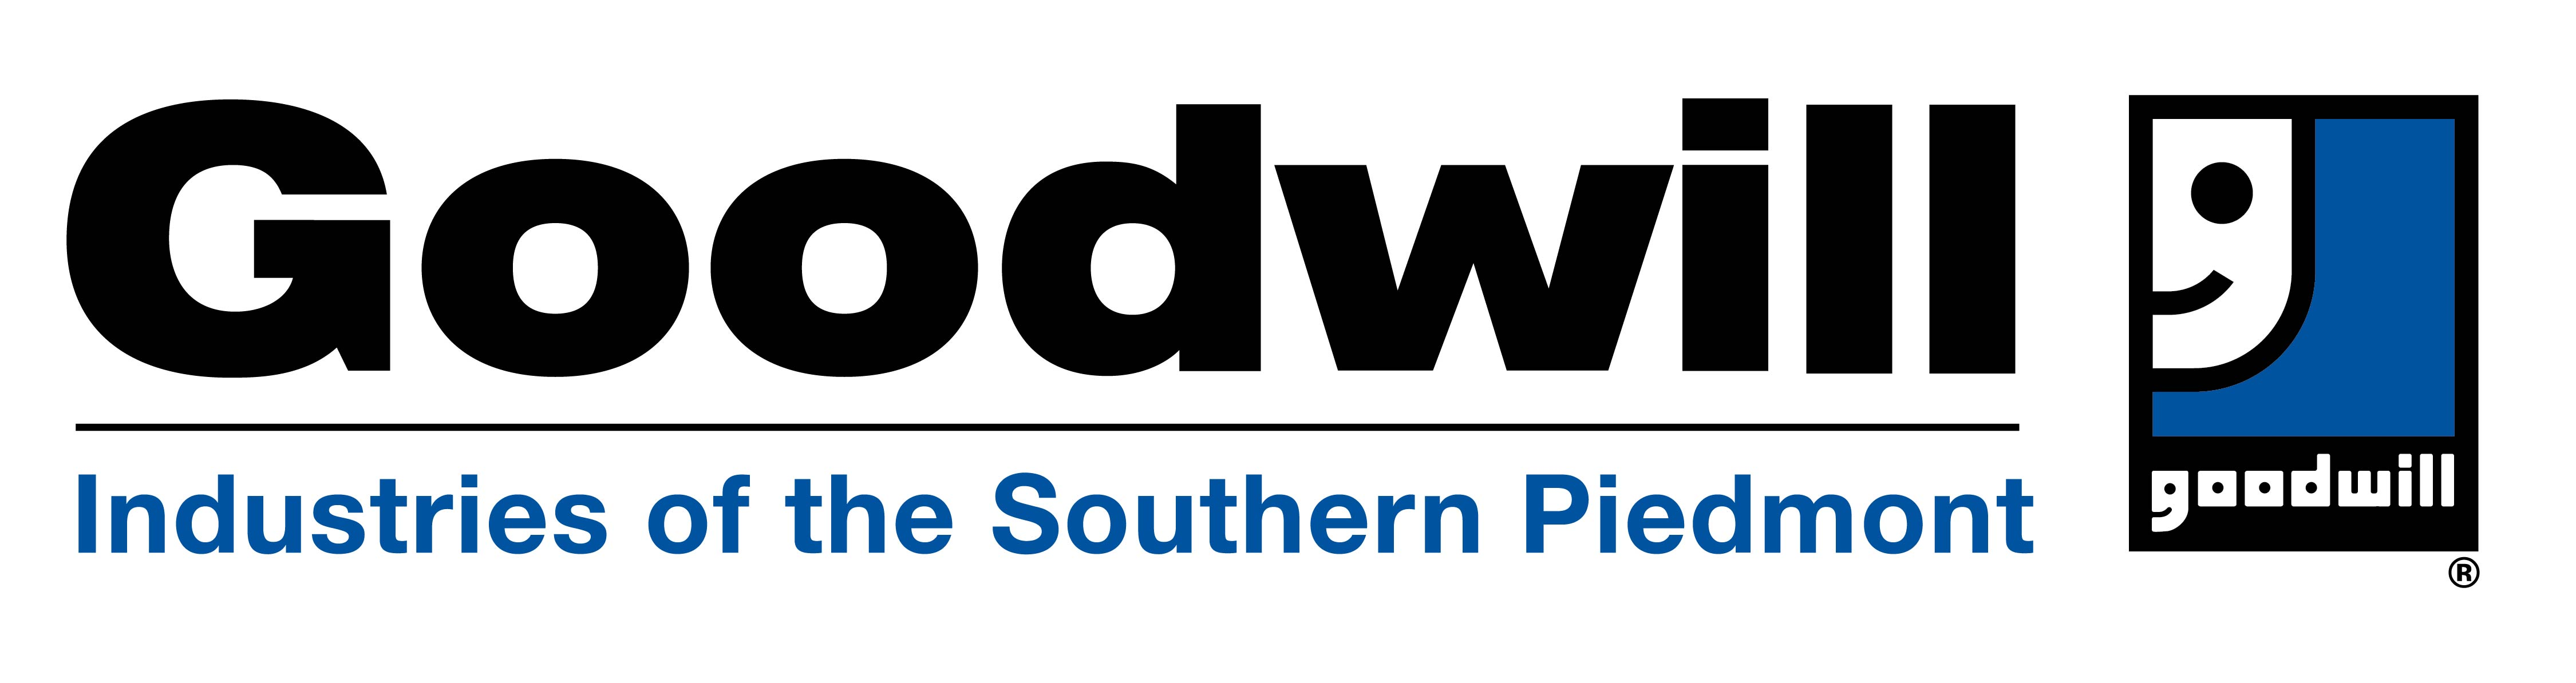 goodwill industries of the southern piedmont president